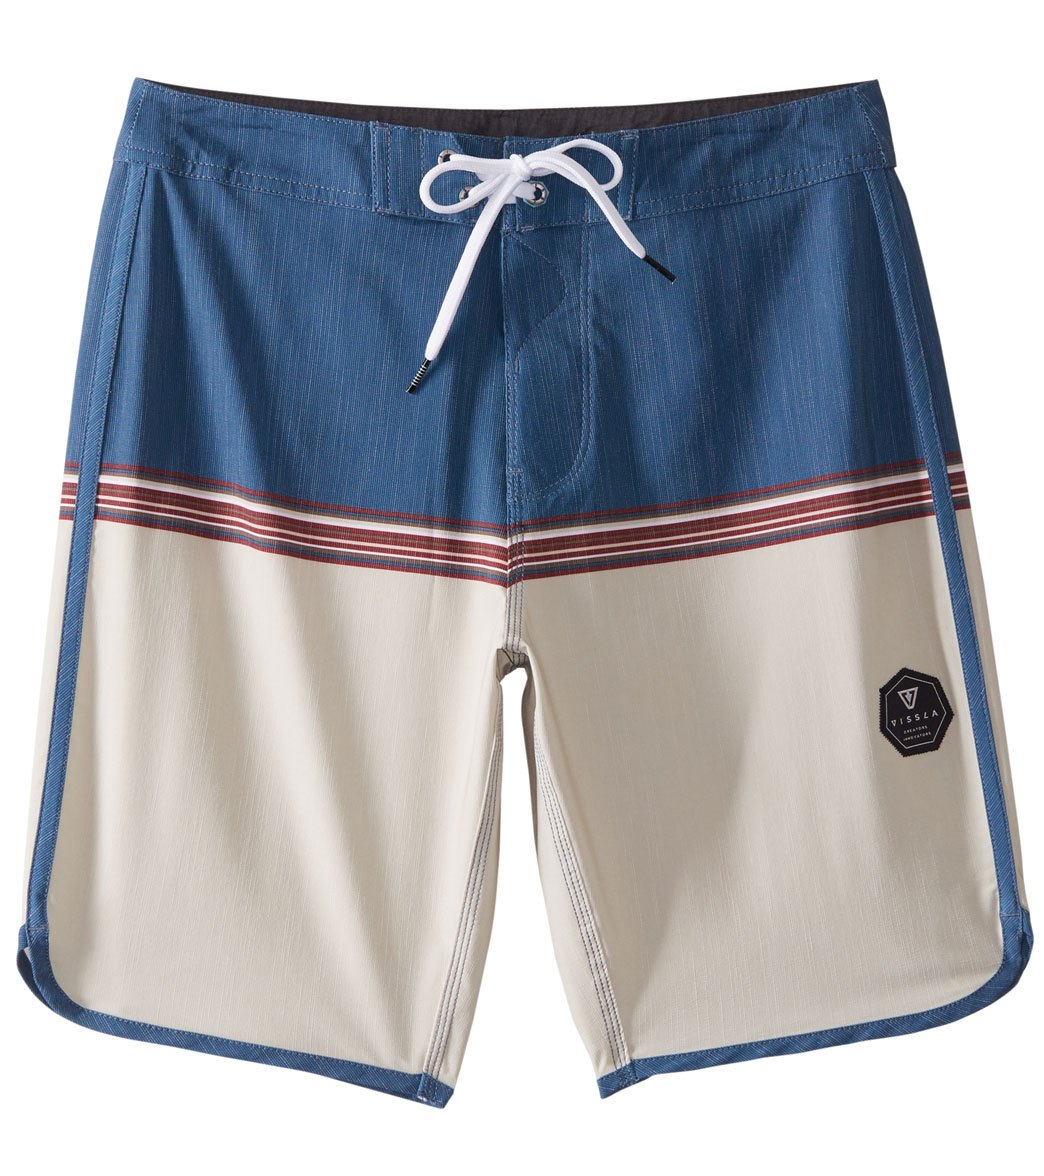 603fe2a371210 Vissla Men's Dredges Boardshort at SwimOutlet.com - Free Shipping